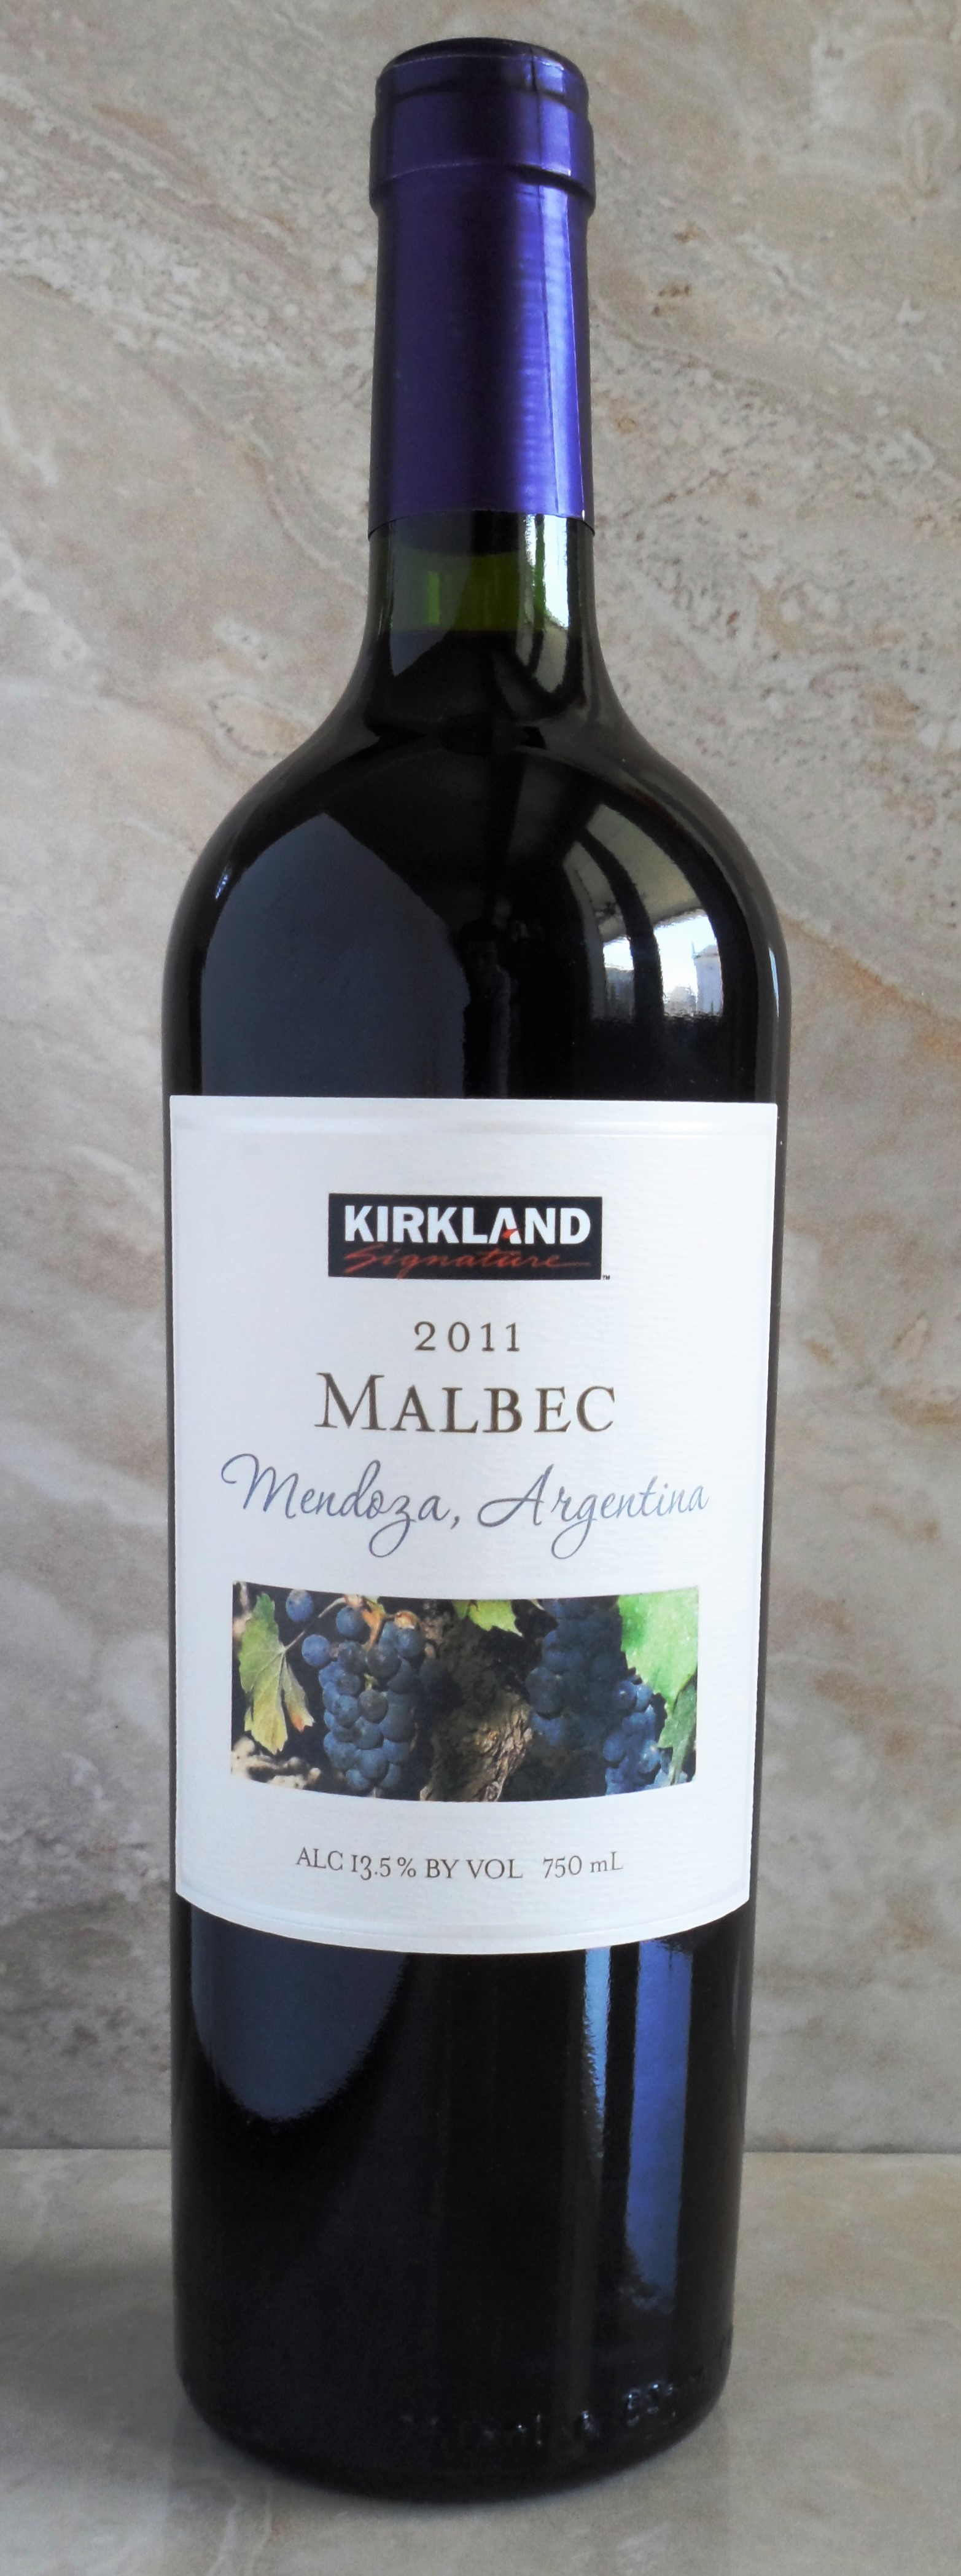 Costco Kirkland Signature Malbec Review